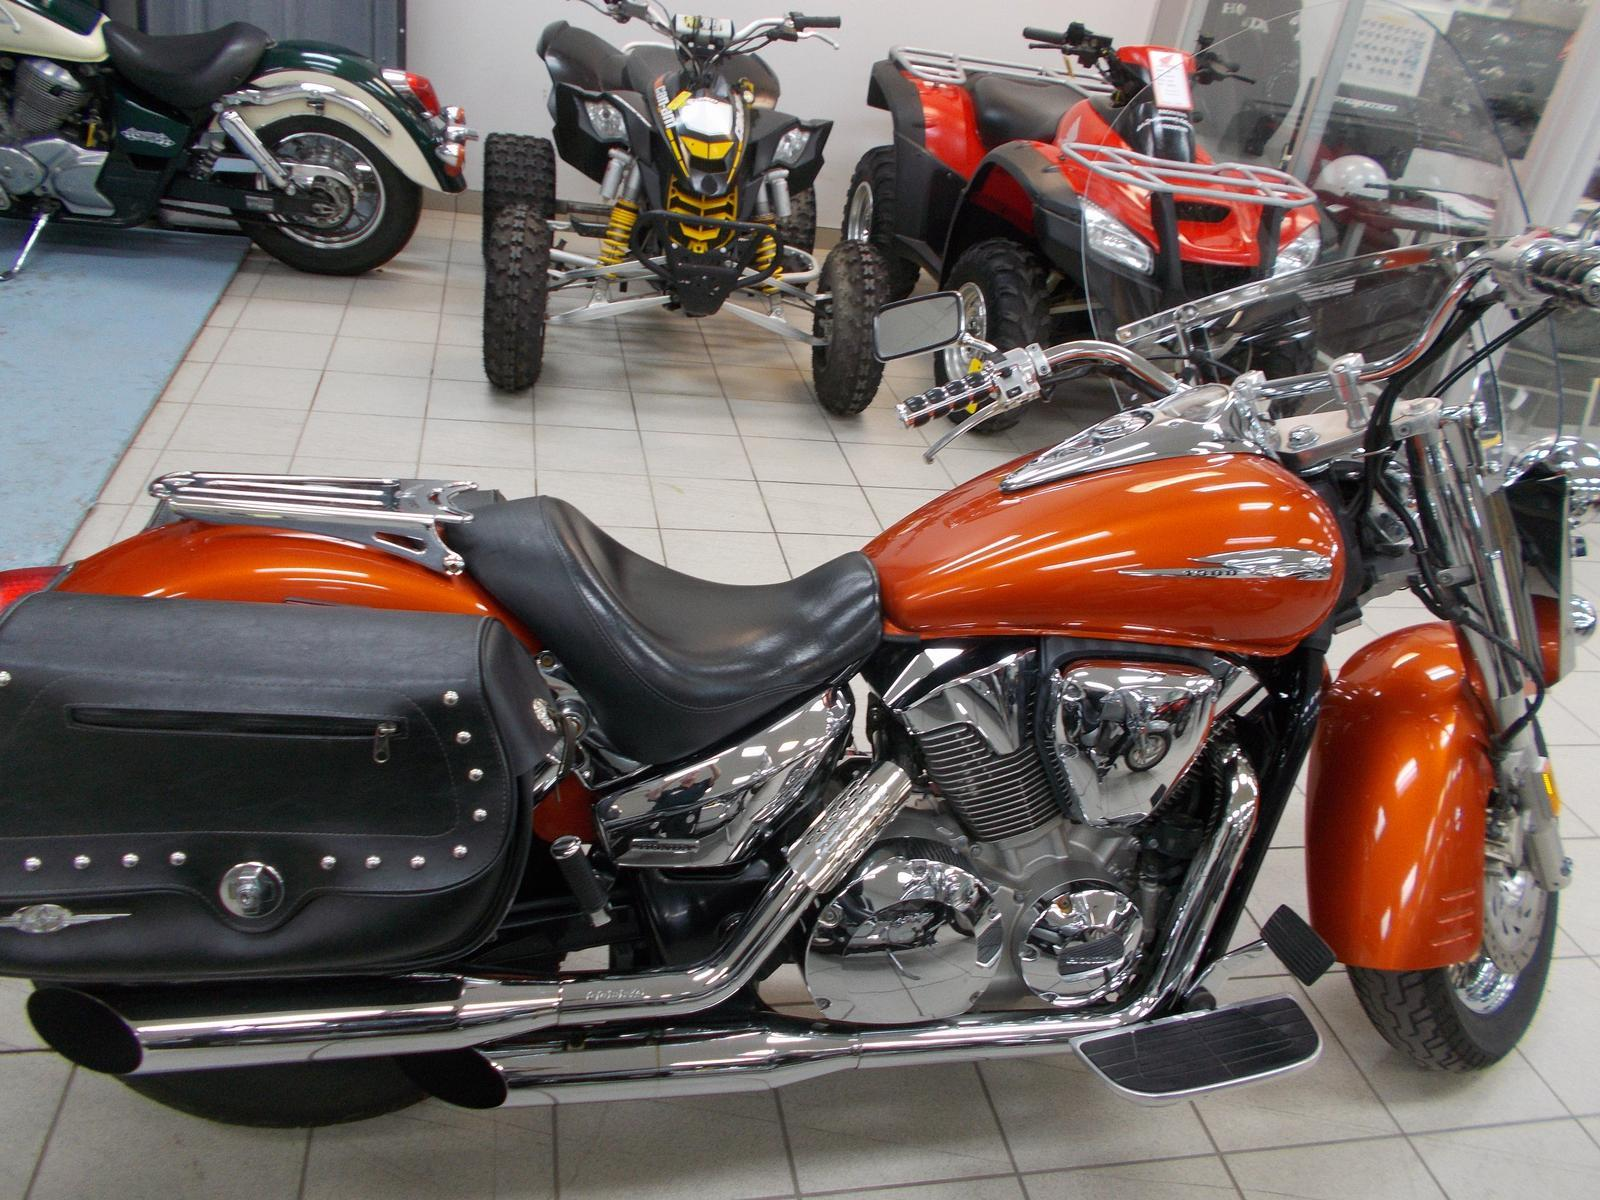 hight resolution of vehicles you might like hondavtx1300